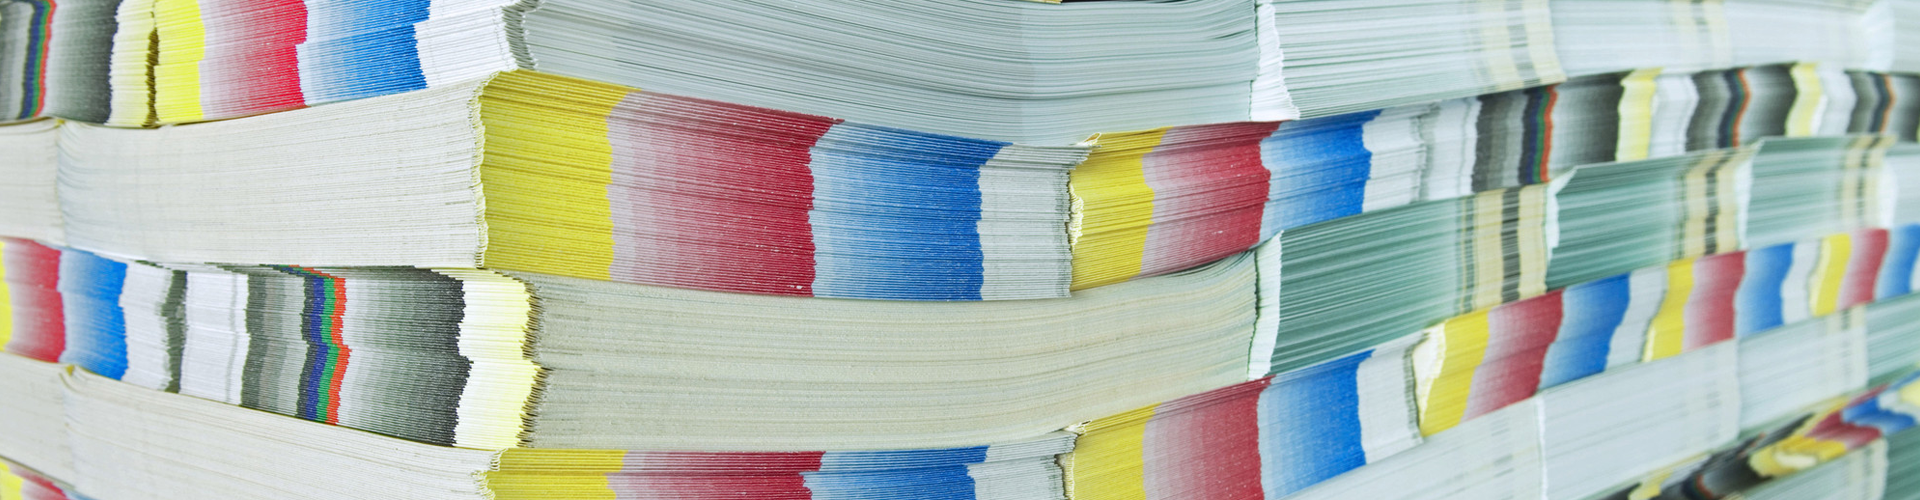 Stacks of white and coloured paper